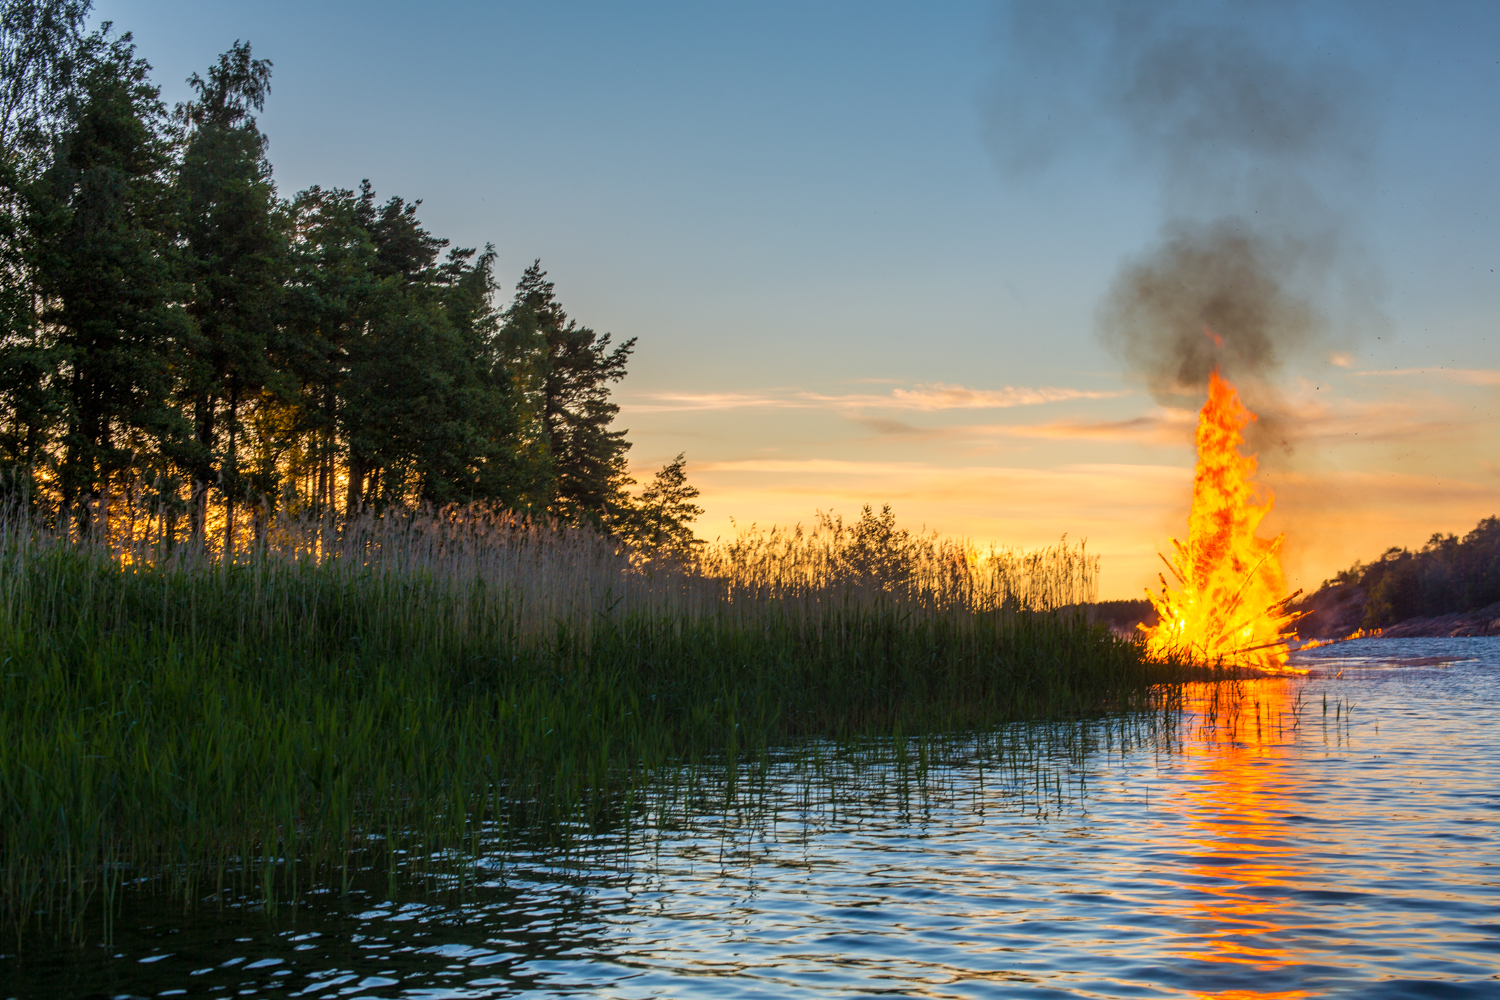 Midsommer in Finland, Finnish style.